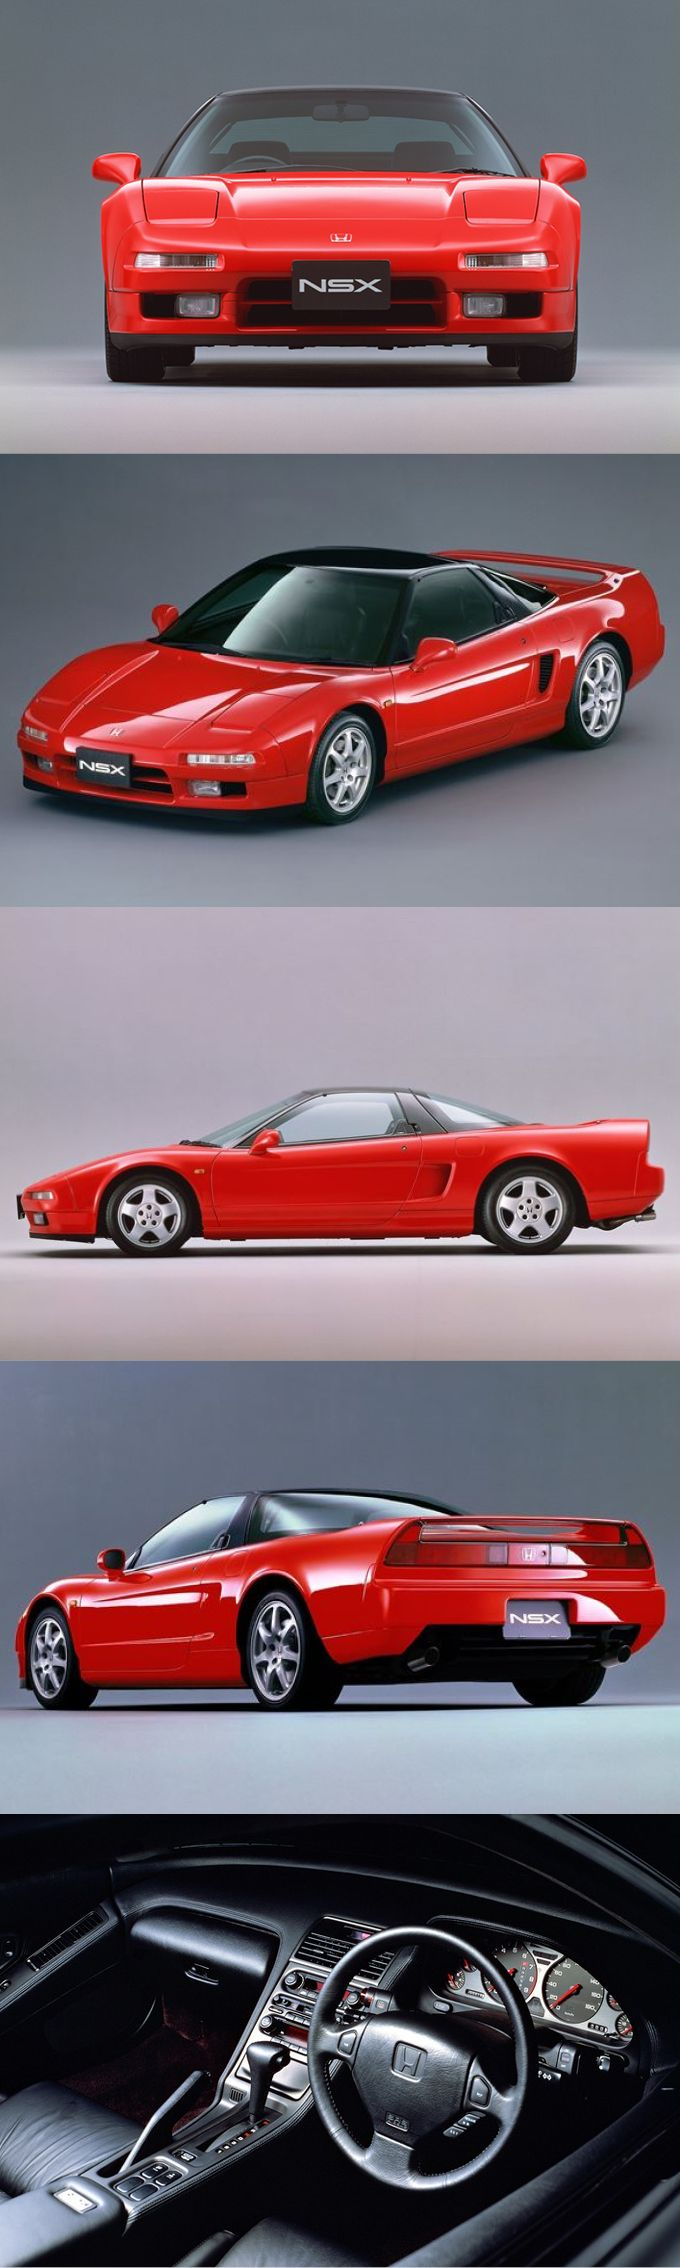 1990 Honda NSX / 290hp / red / Japan